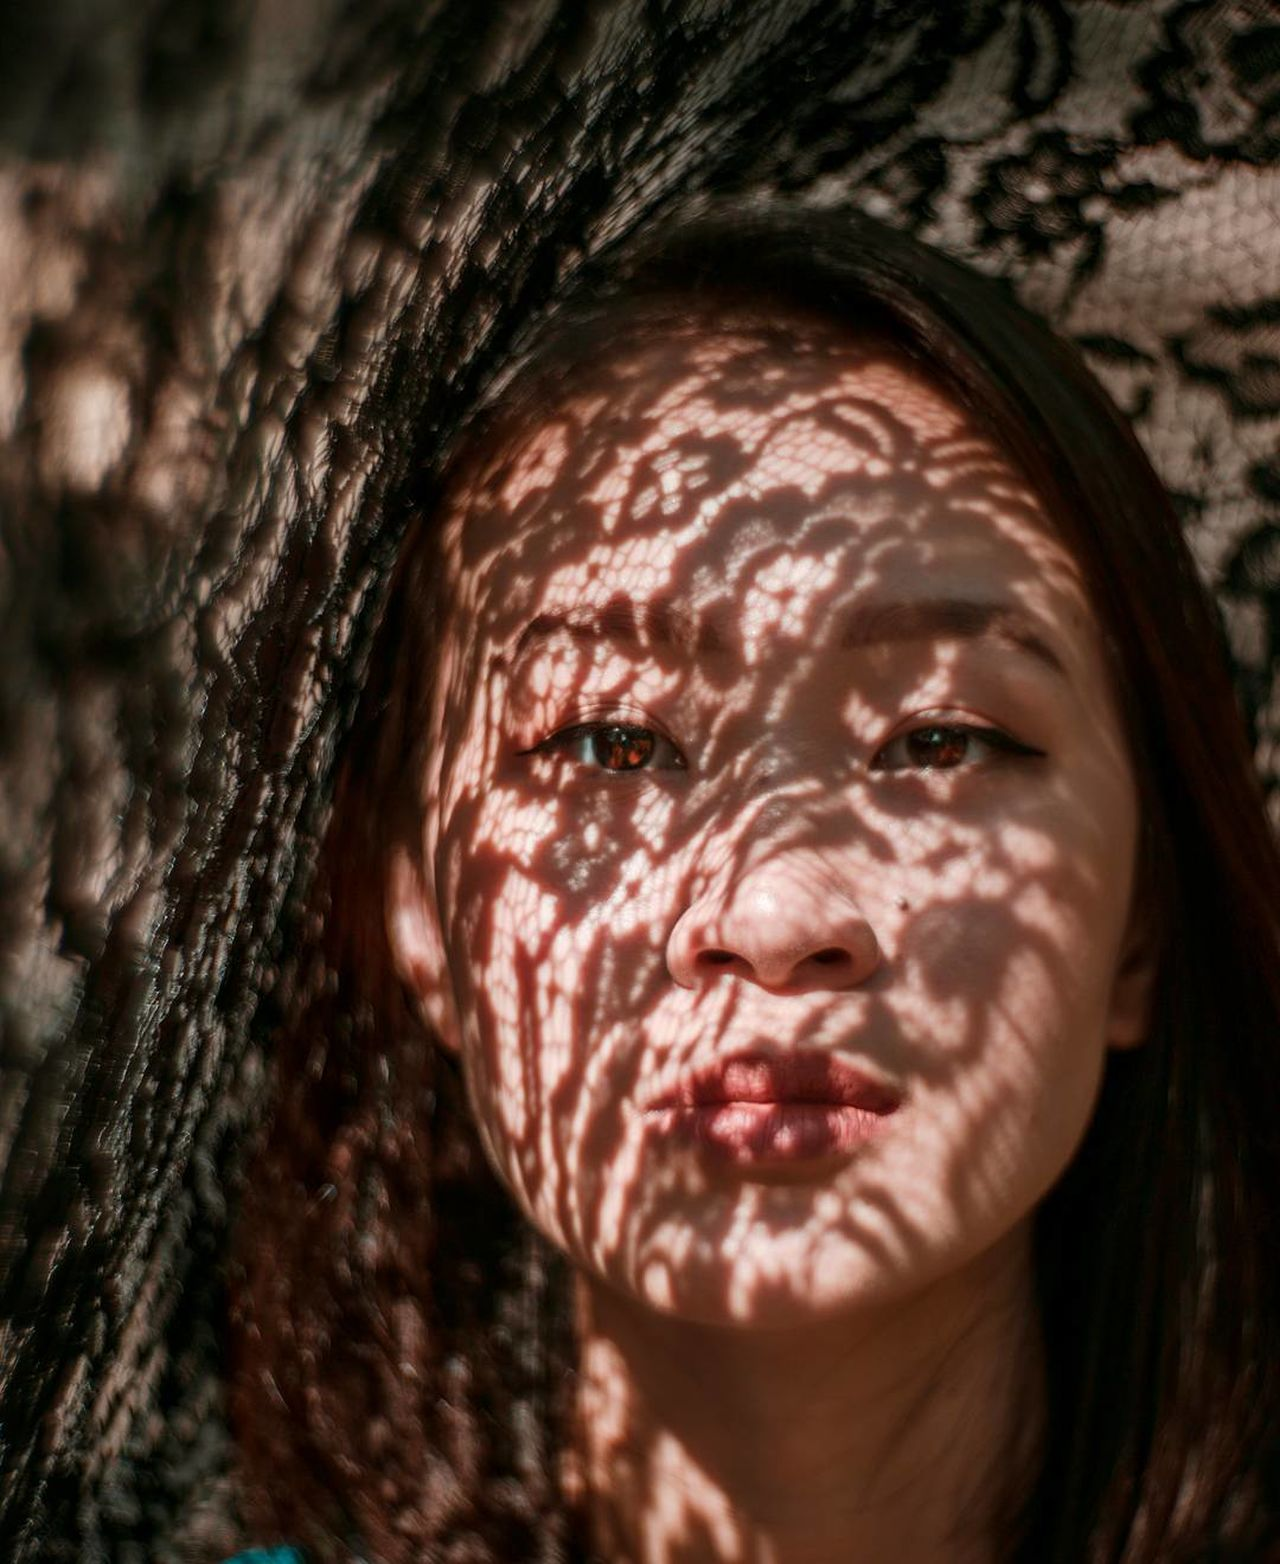 shot with the Petzval 85 Lace Lace - Textile Close-up Human Face Headshot Portrait Outdoors Light Collection Beautiful People Portrait Of A Woman Portrait Photography Light And Shadow Dreamlike The Portraitist - 2017 EyeEm Awards Women Around The World Light Pattern Place Of Heart